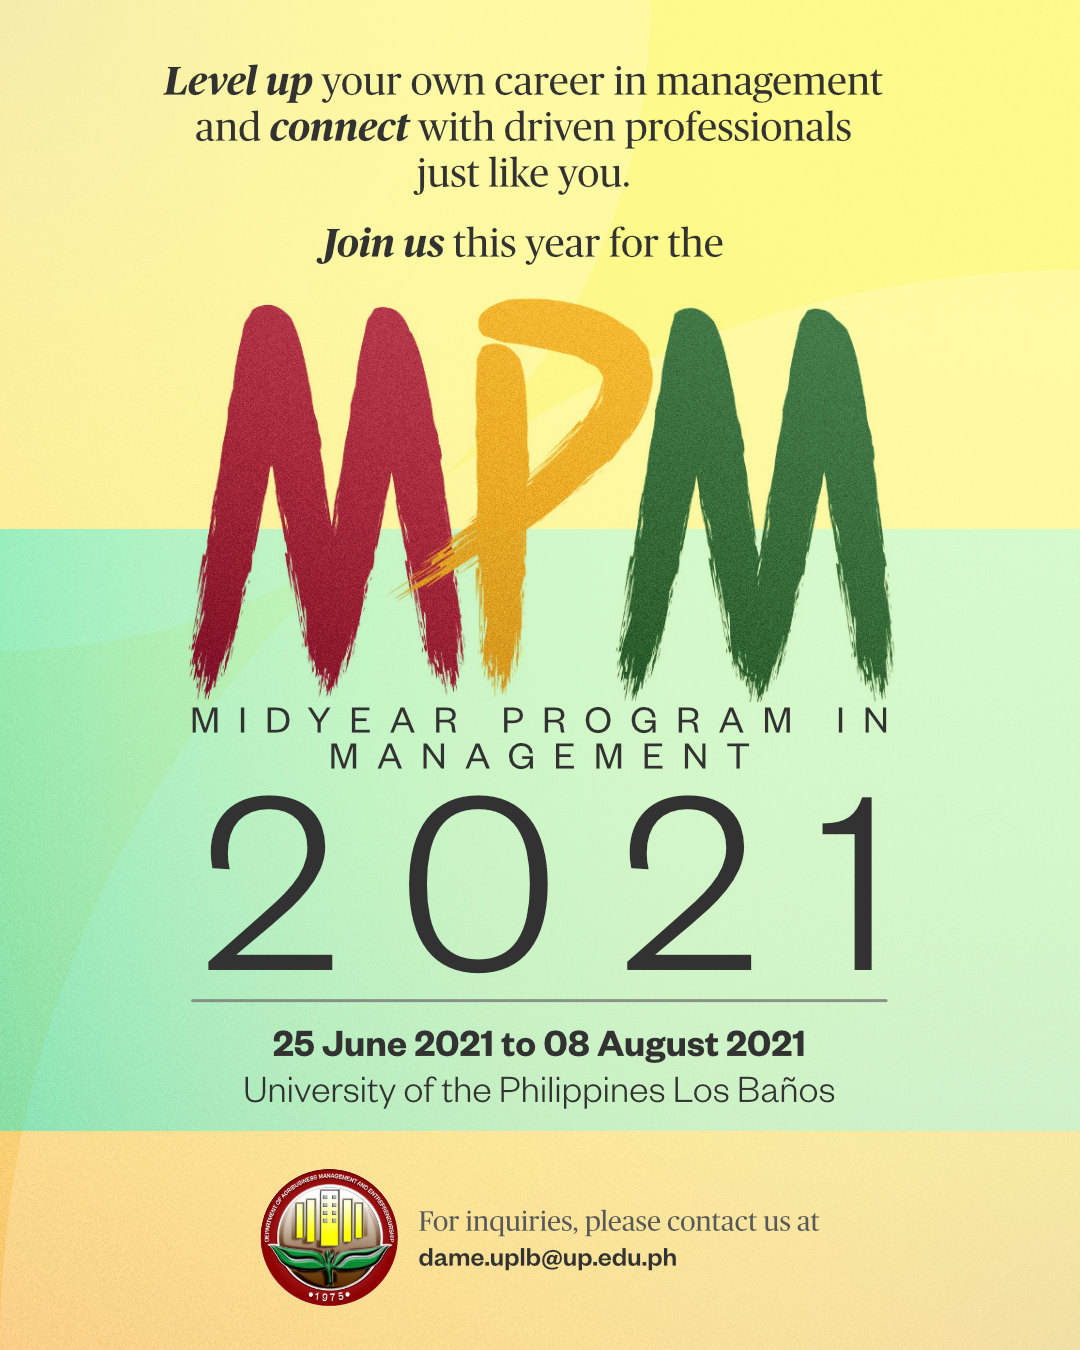 DAME to Offer Midyear Program in Management from June to August 2021